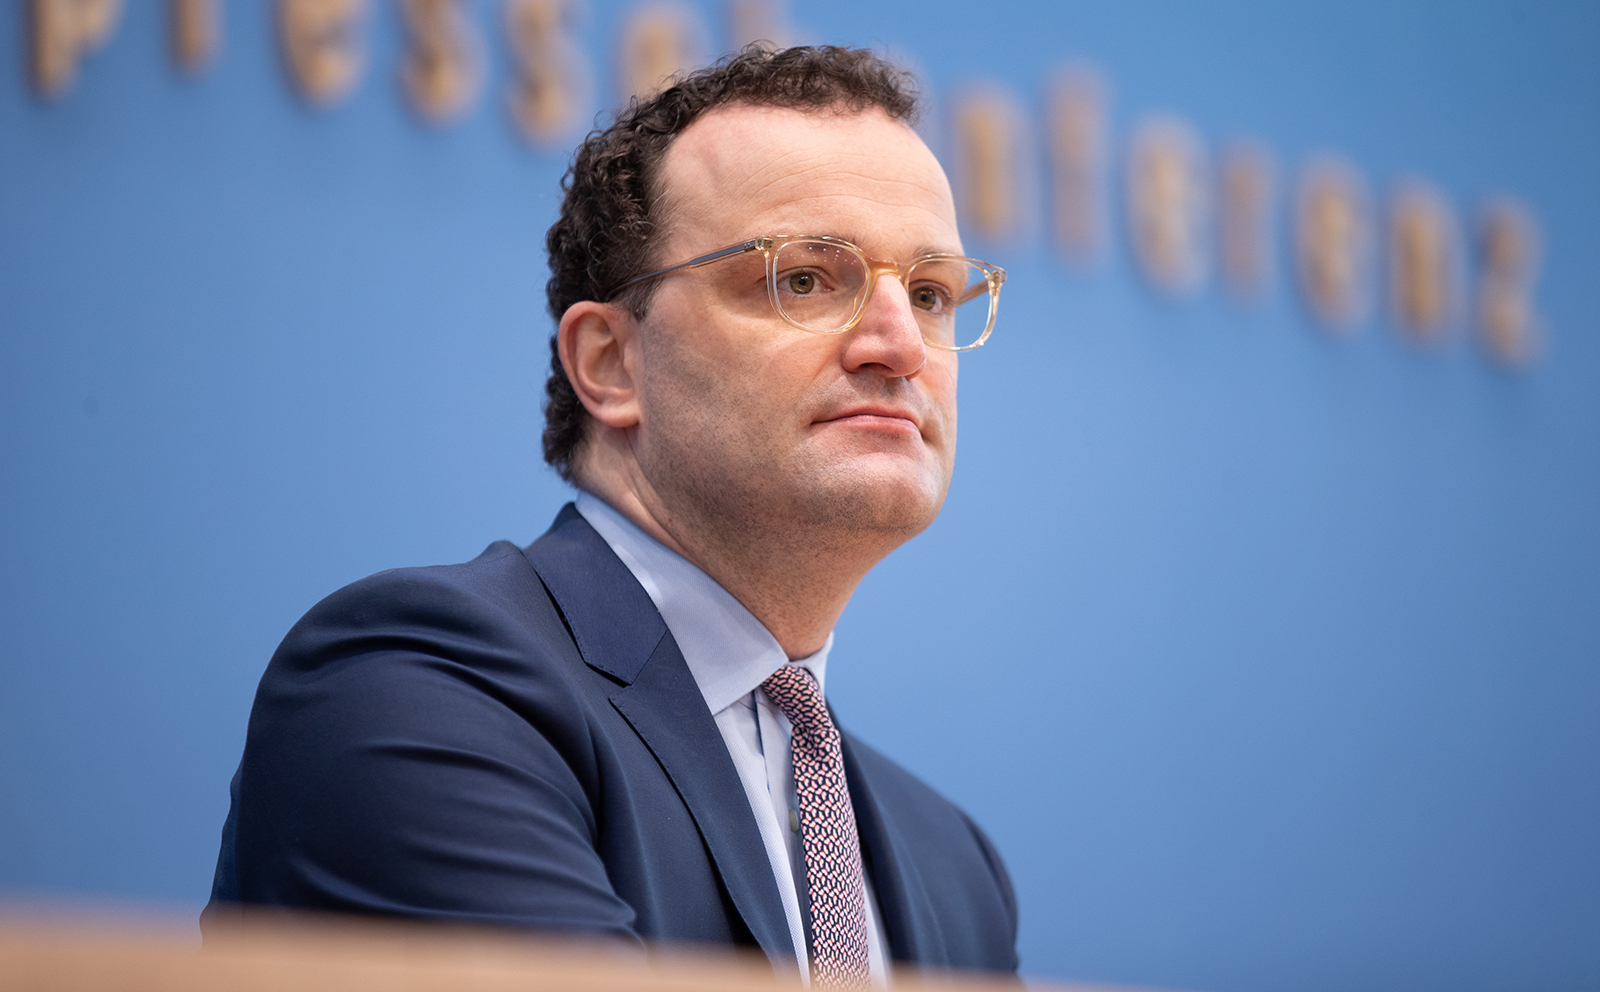 German Health Minister, Jens Spahn speaks to the media in Berlin, on February 26.